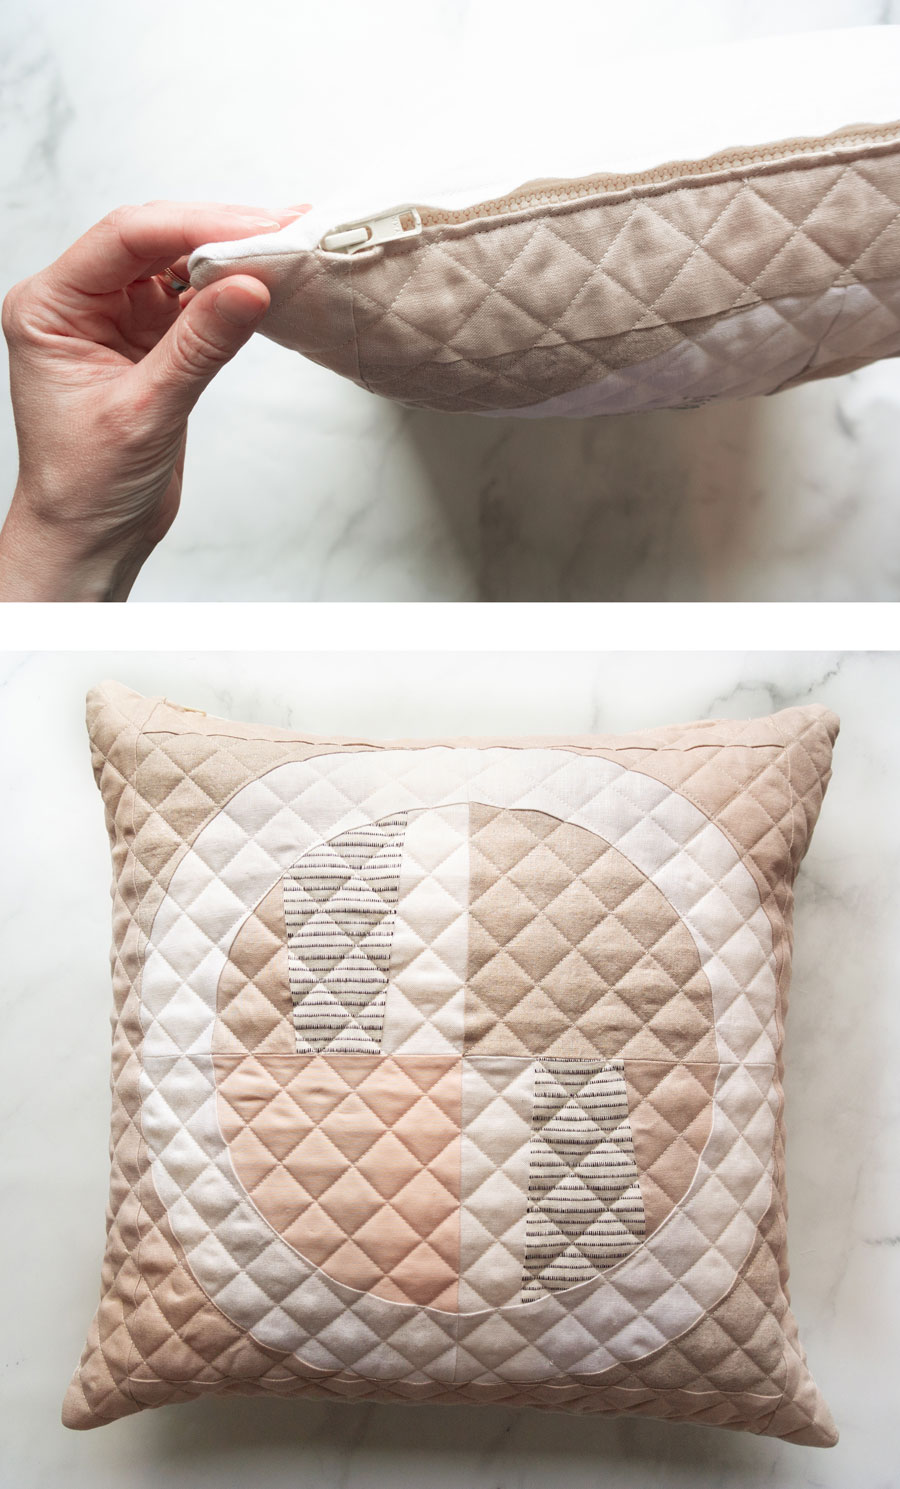 Sew a quilted zipper pillow with this step by step tutorial. I'll walk you through how to baste and quilt your pillow top, sew a zipper, and finish the pillow beautifully!